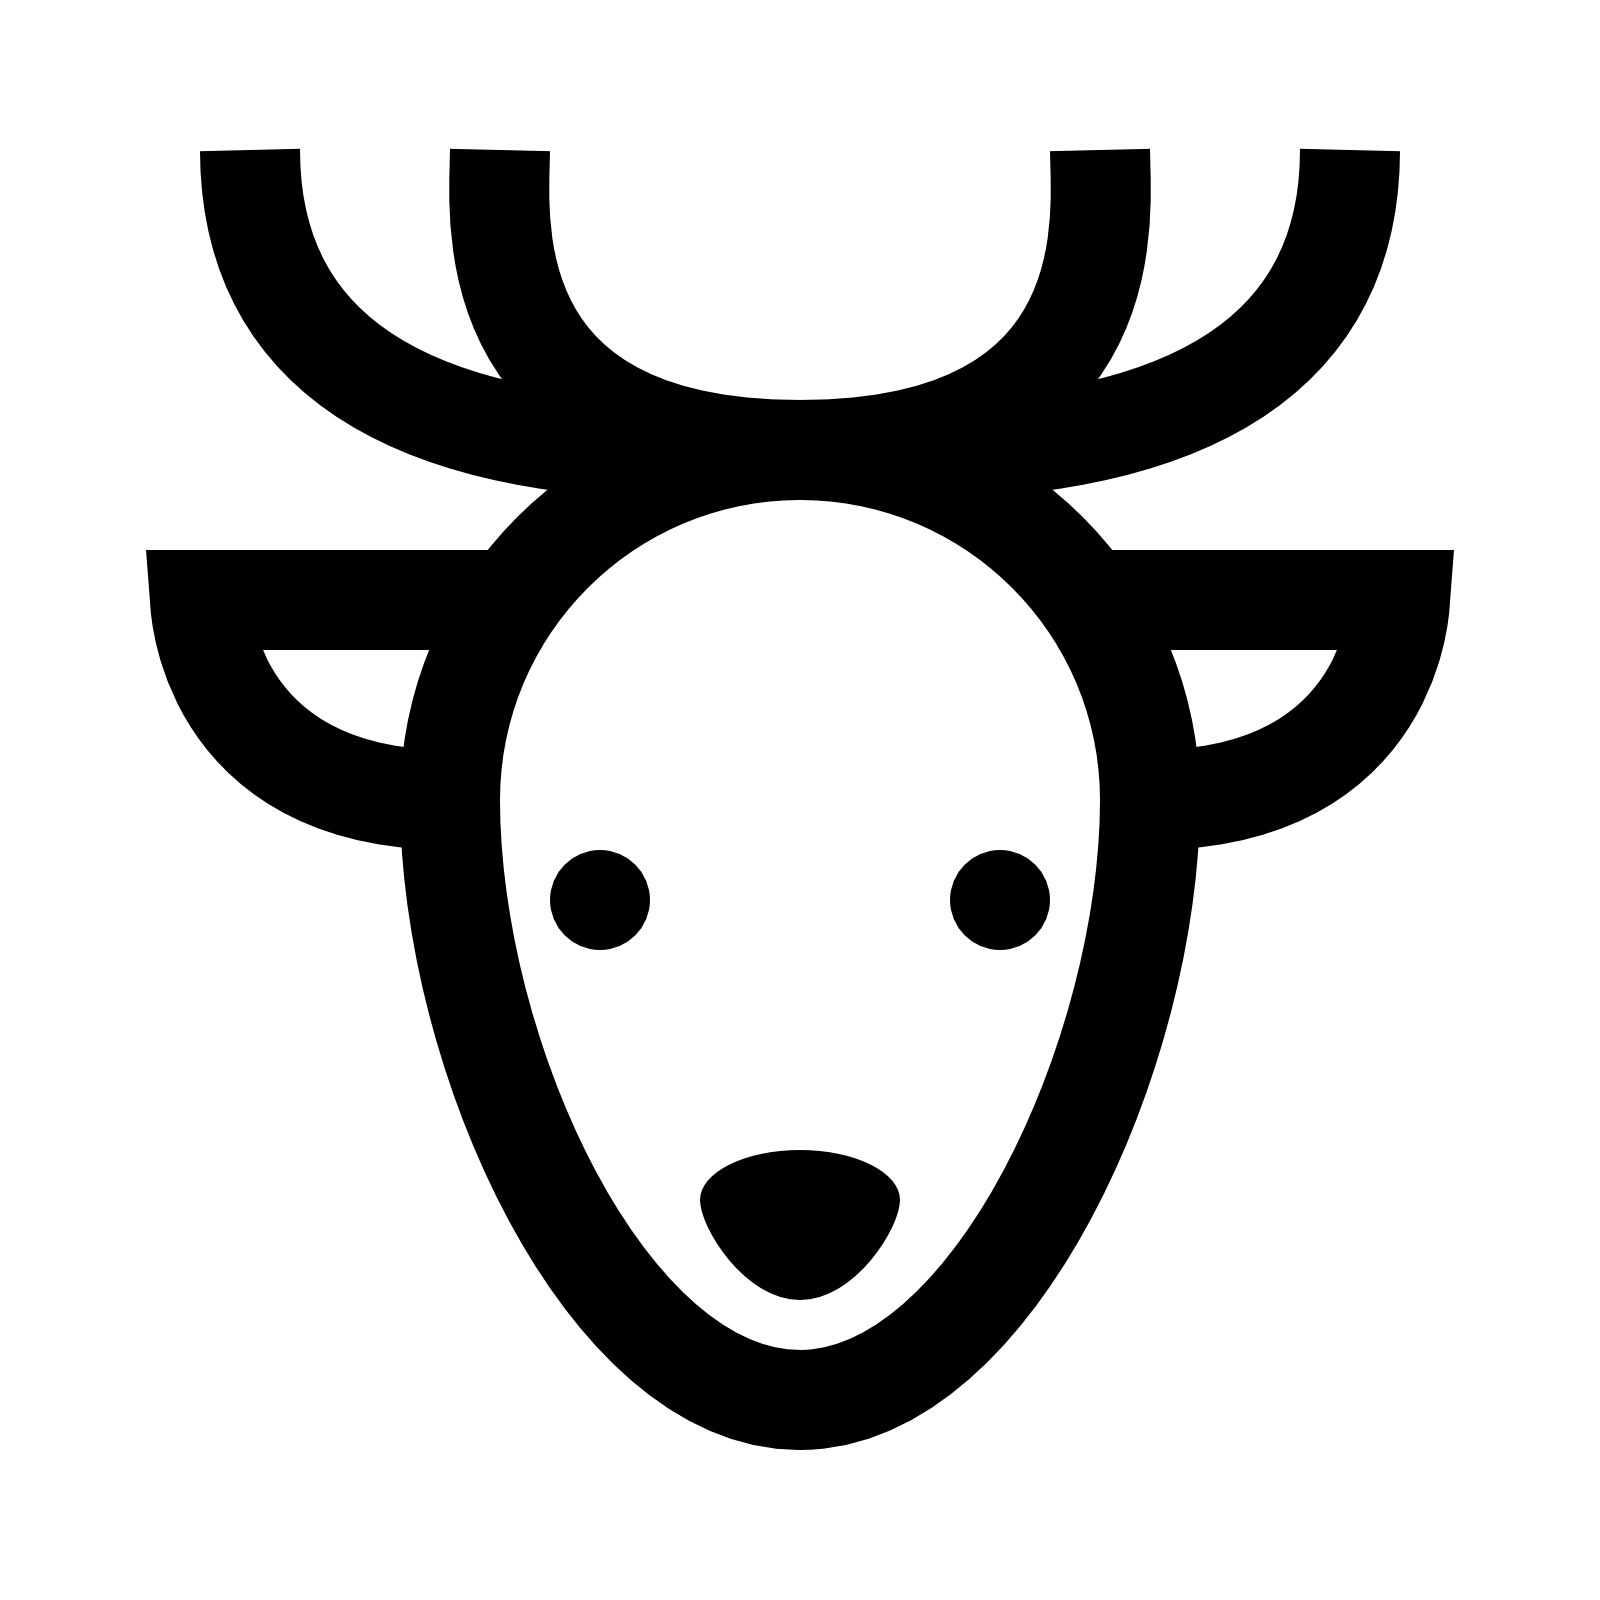 Clipart reindeer icon. Icons png vector free